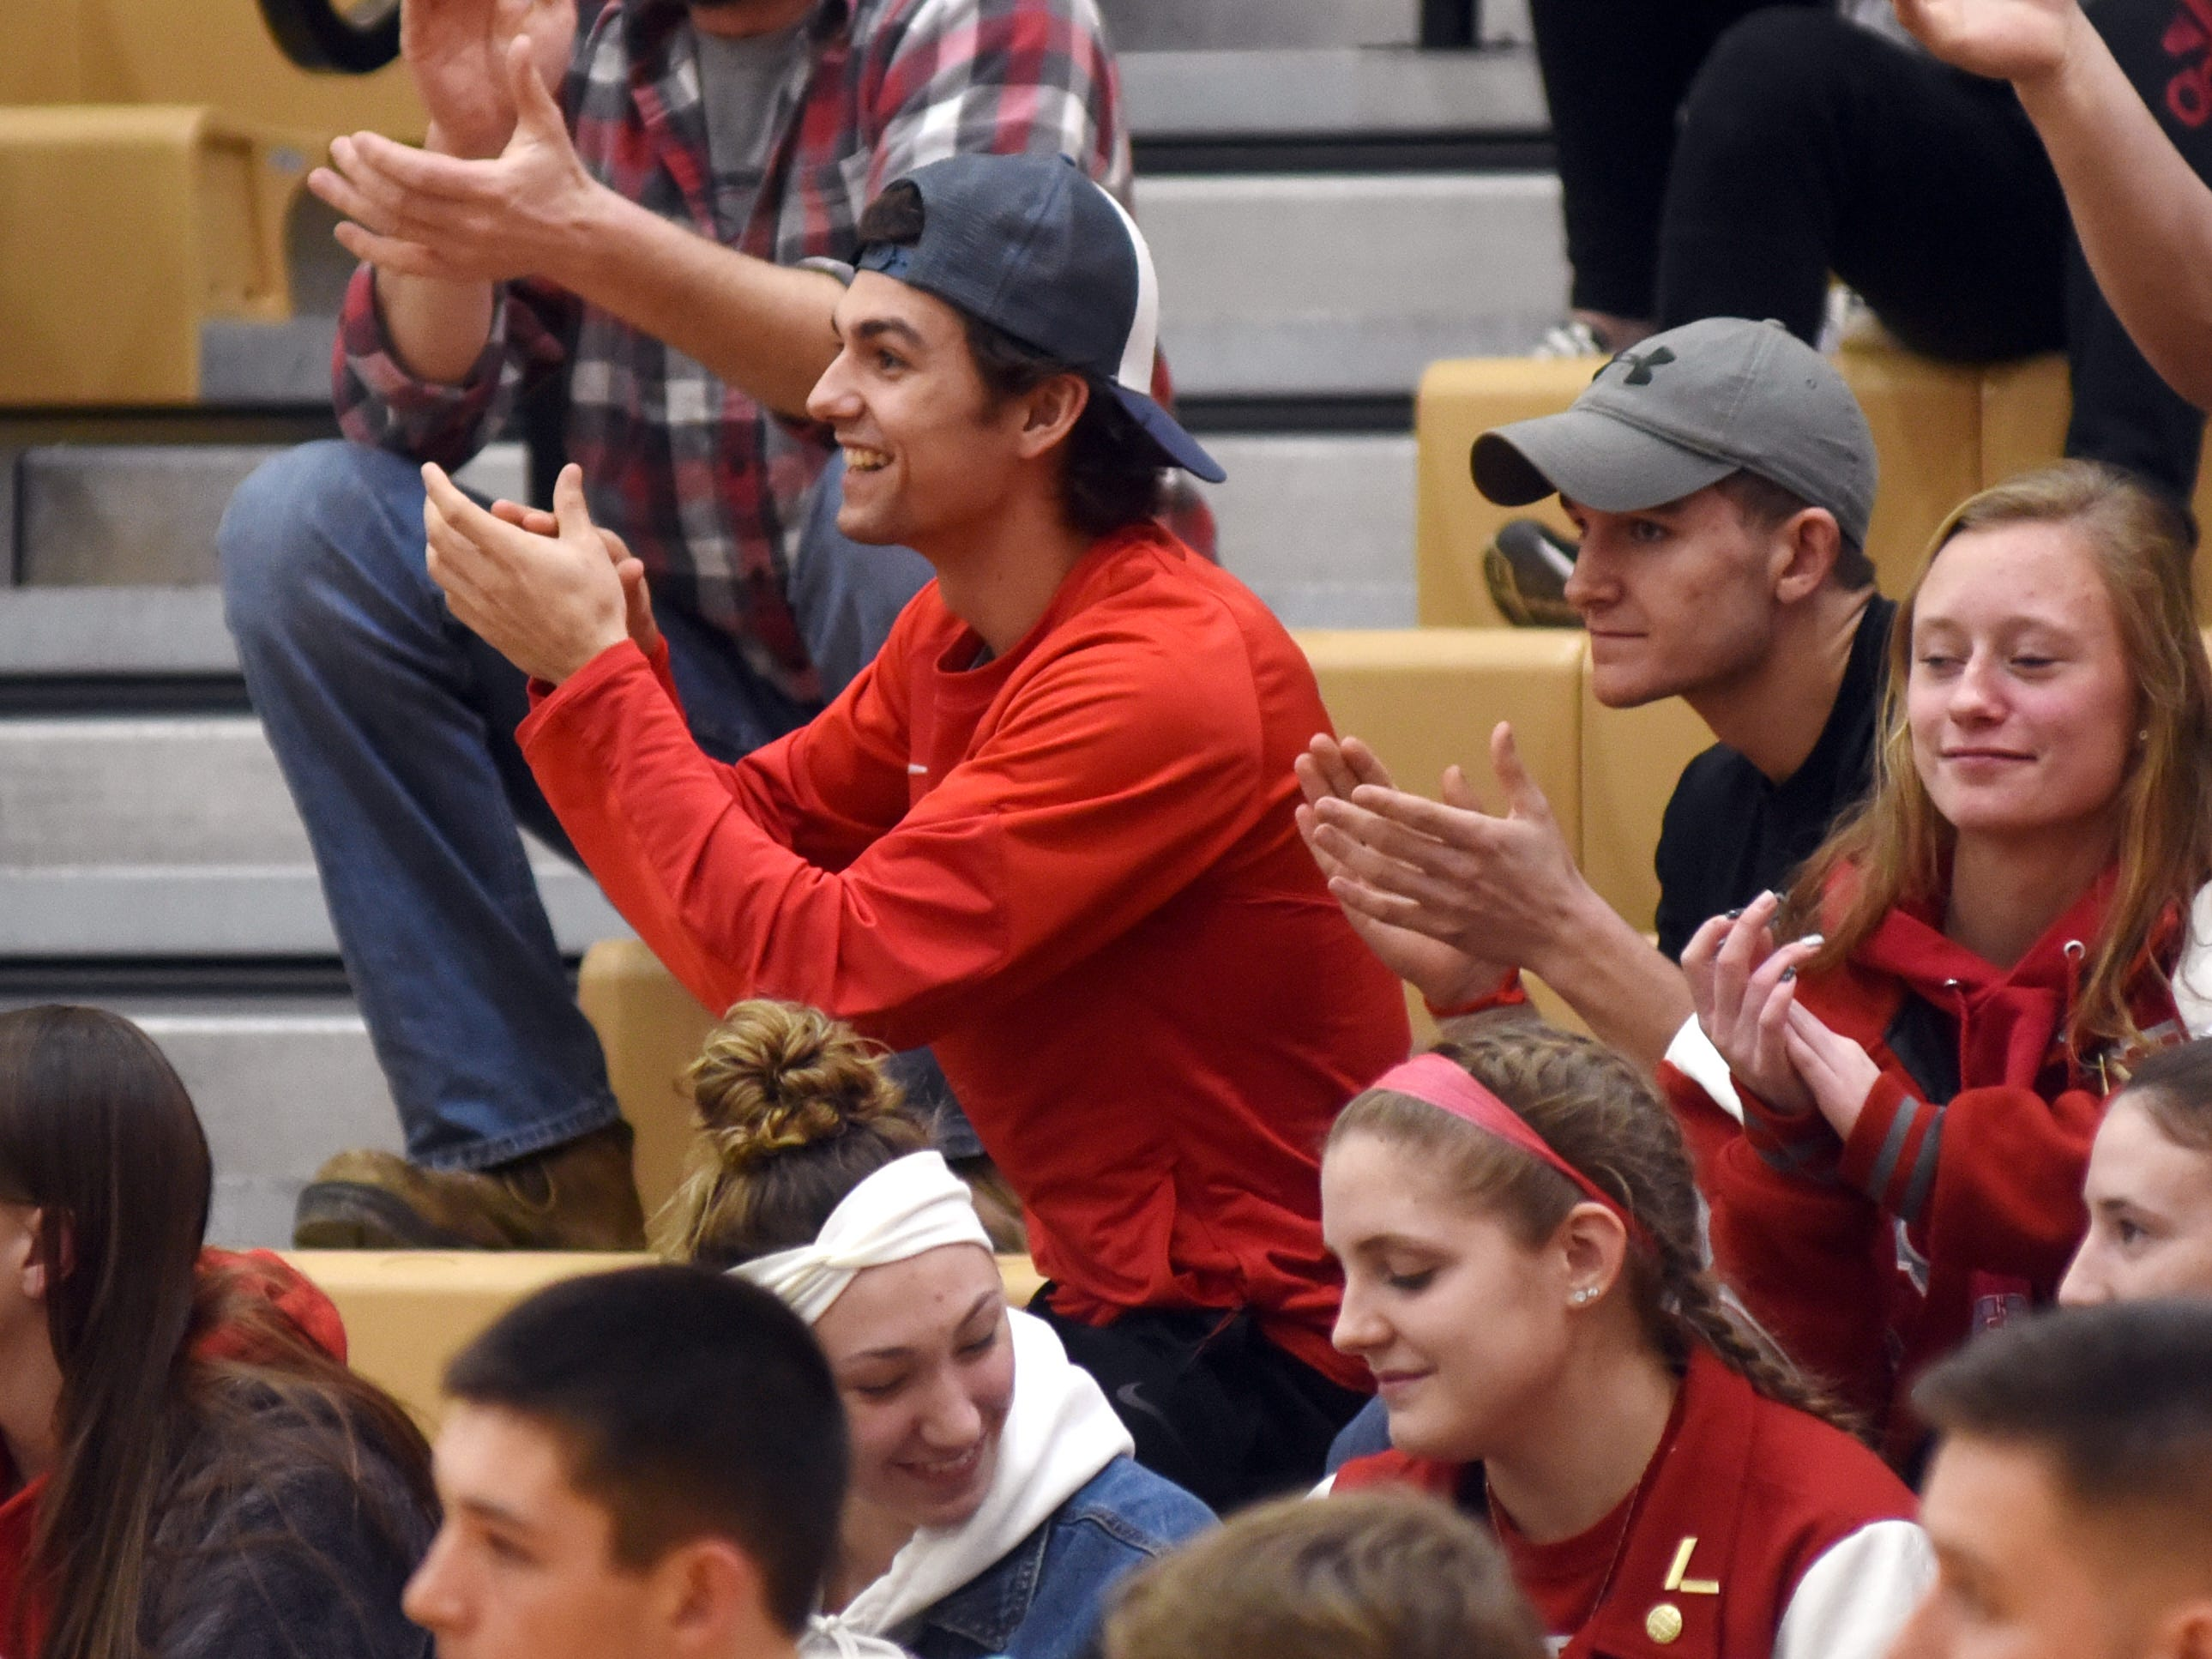 Sheridan senior Reece Trowbridge cheers on the basketball team during its game against Tri-Valley on Friday night in Dresden.